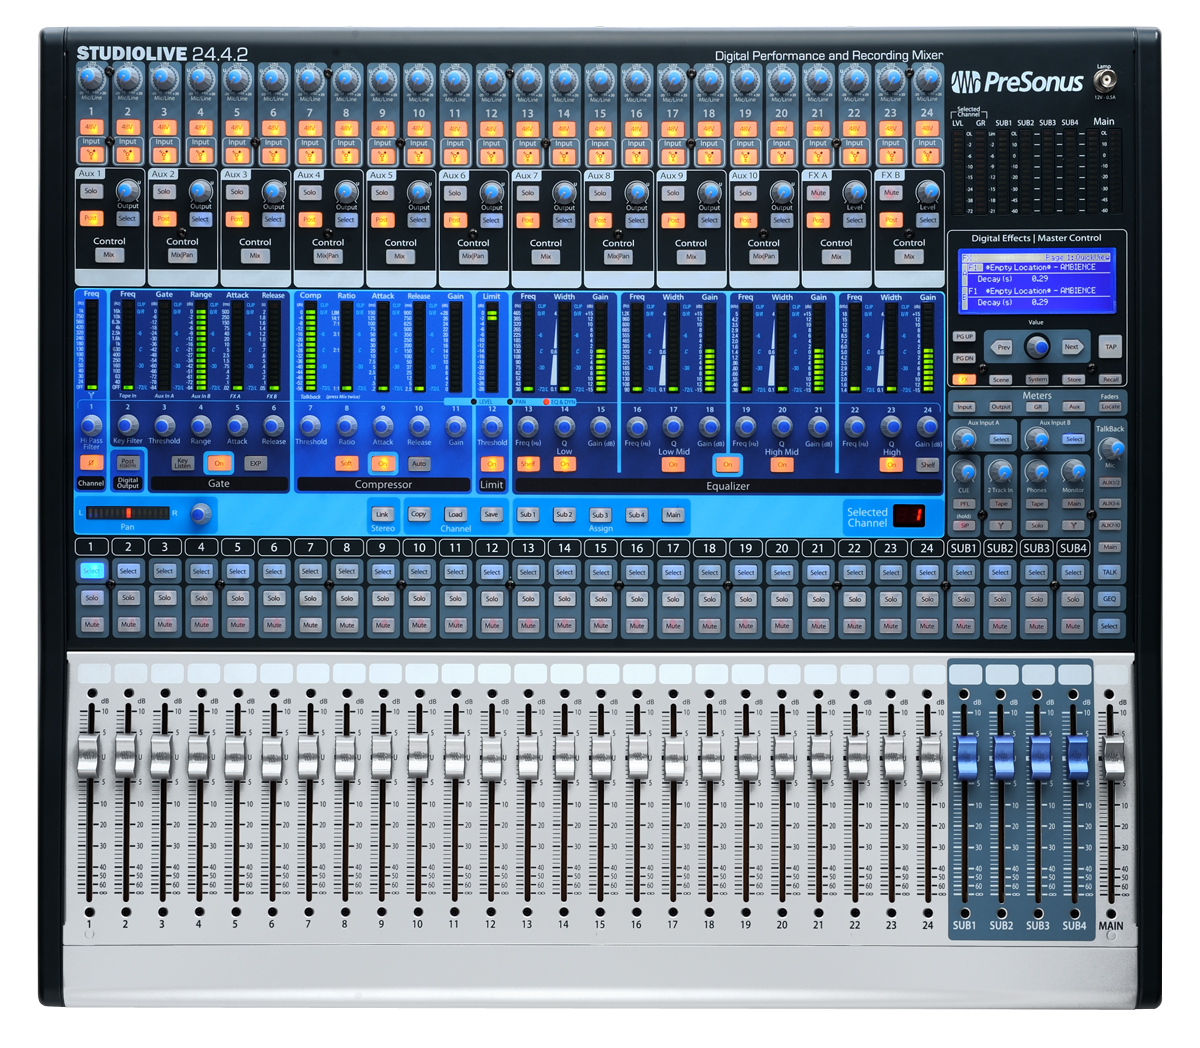 Musicplayers Com Reviews Gt Recording Gt Presonus